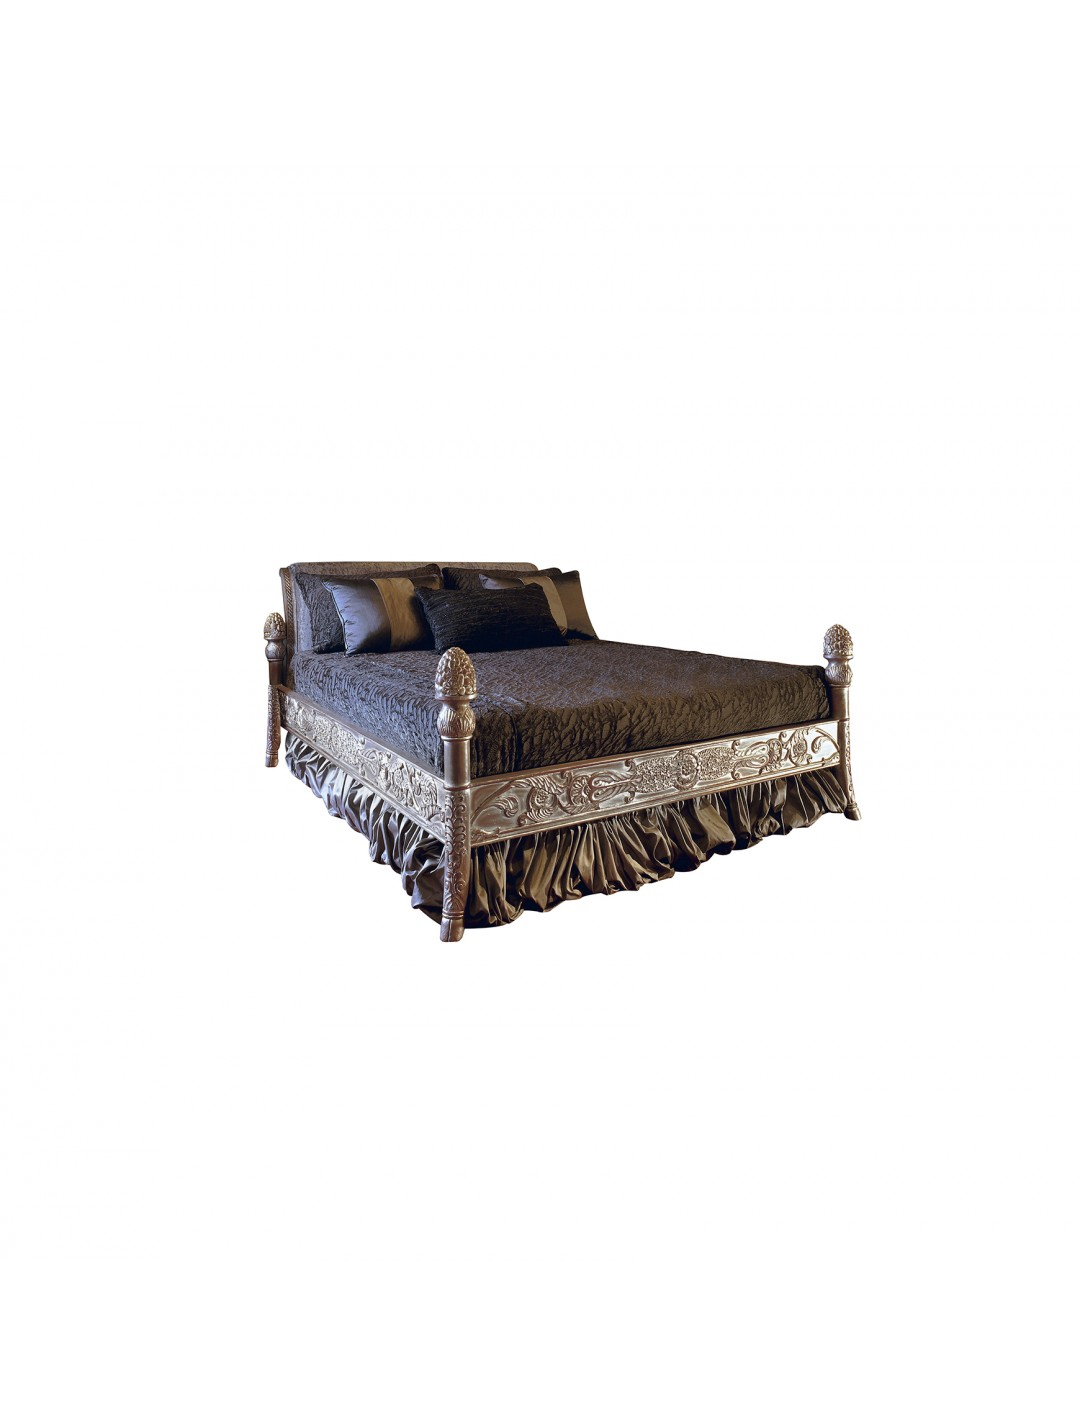 Hand Carved Bed: SILVIA WOODEN HAND CARVED BED (FOR 180X200 CM